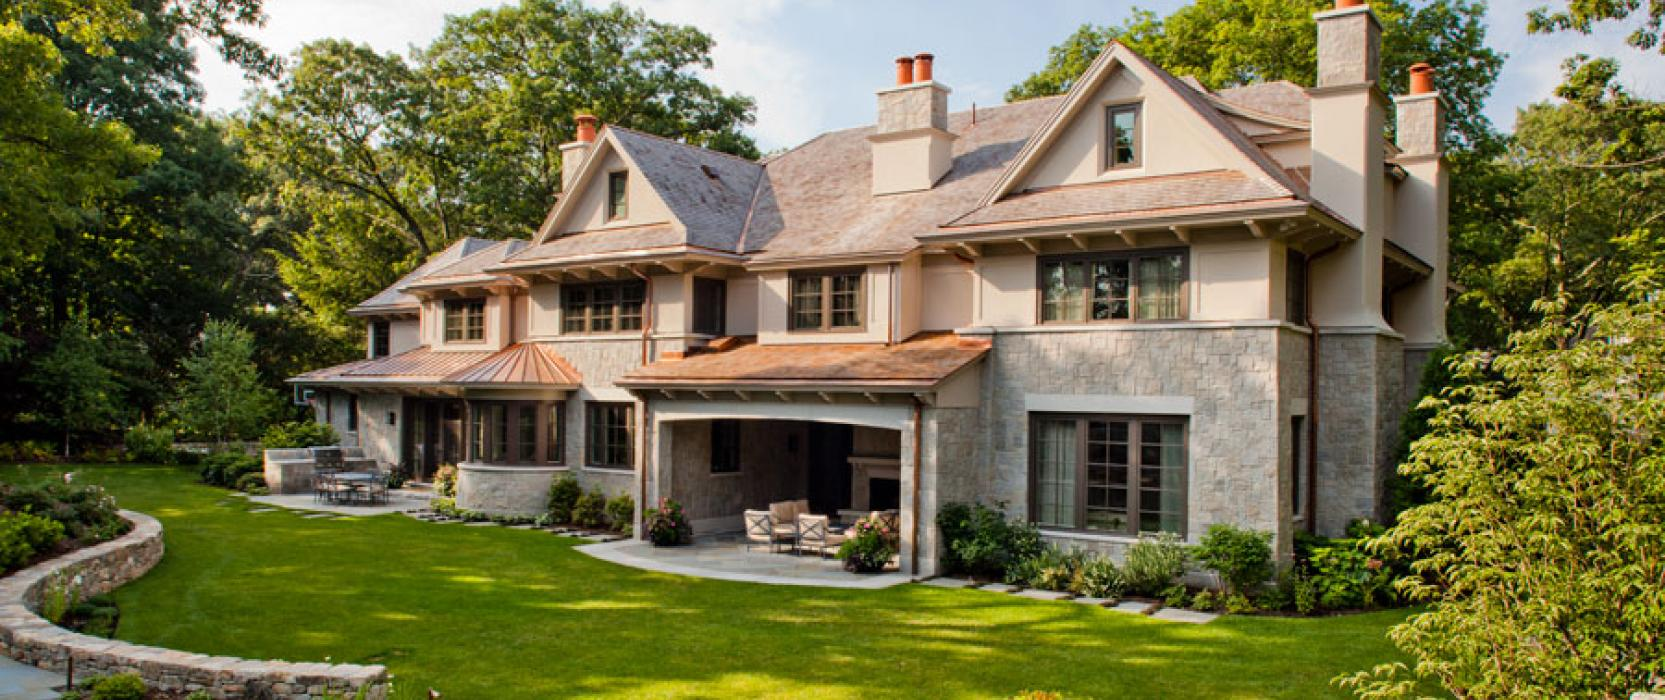 PRISM Award-Winning Country House